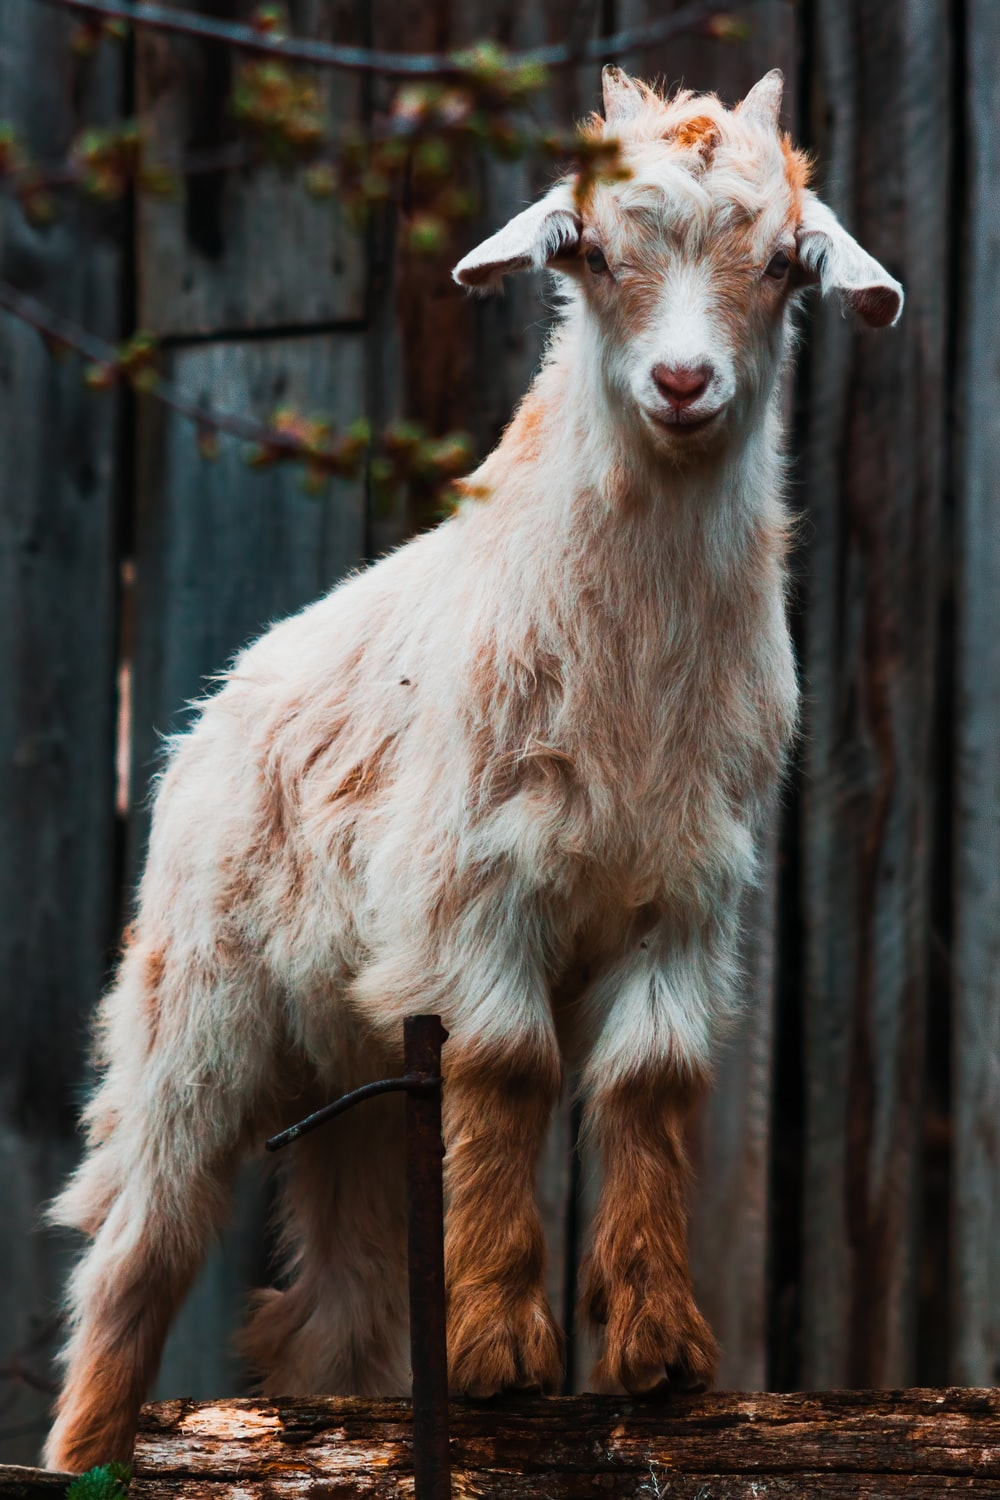 white goat standing on brown wooden fence during daytime